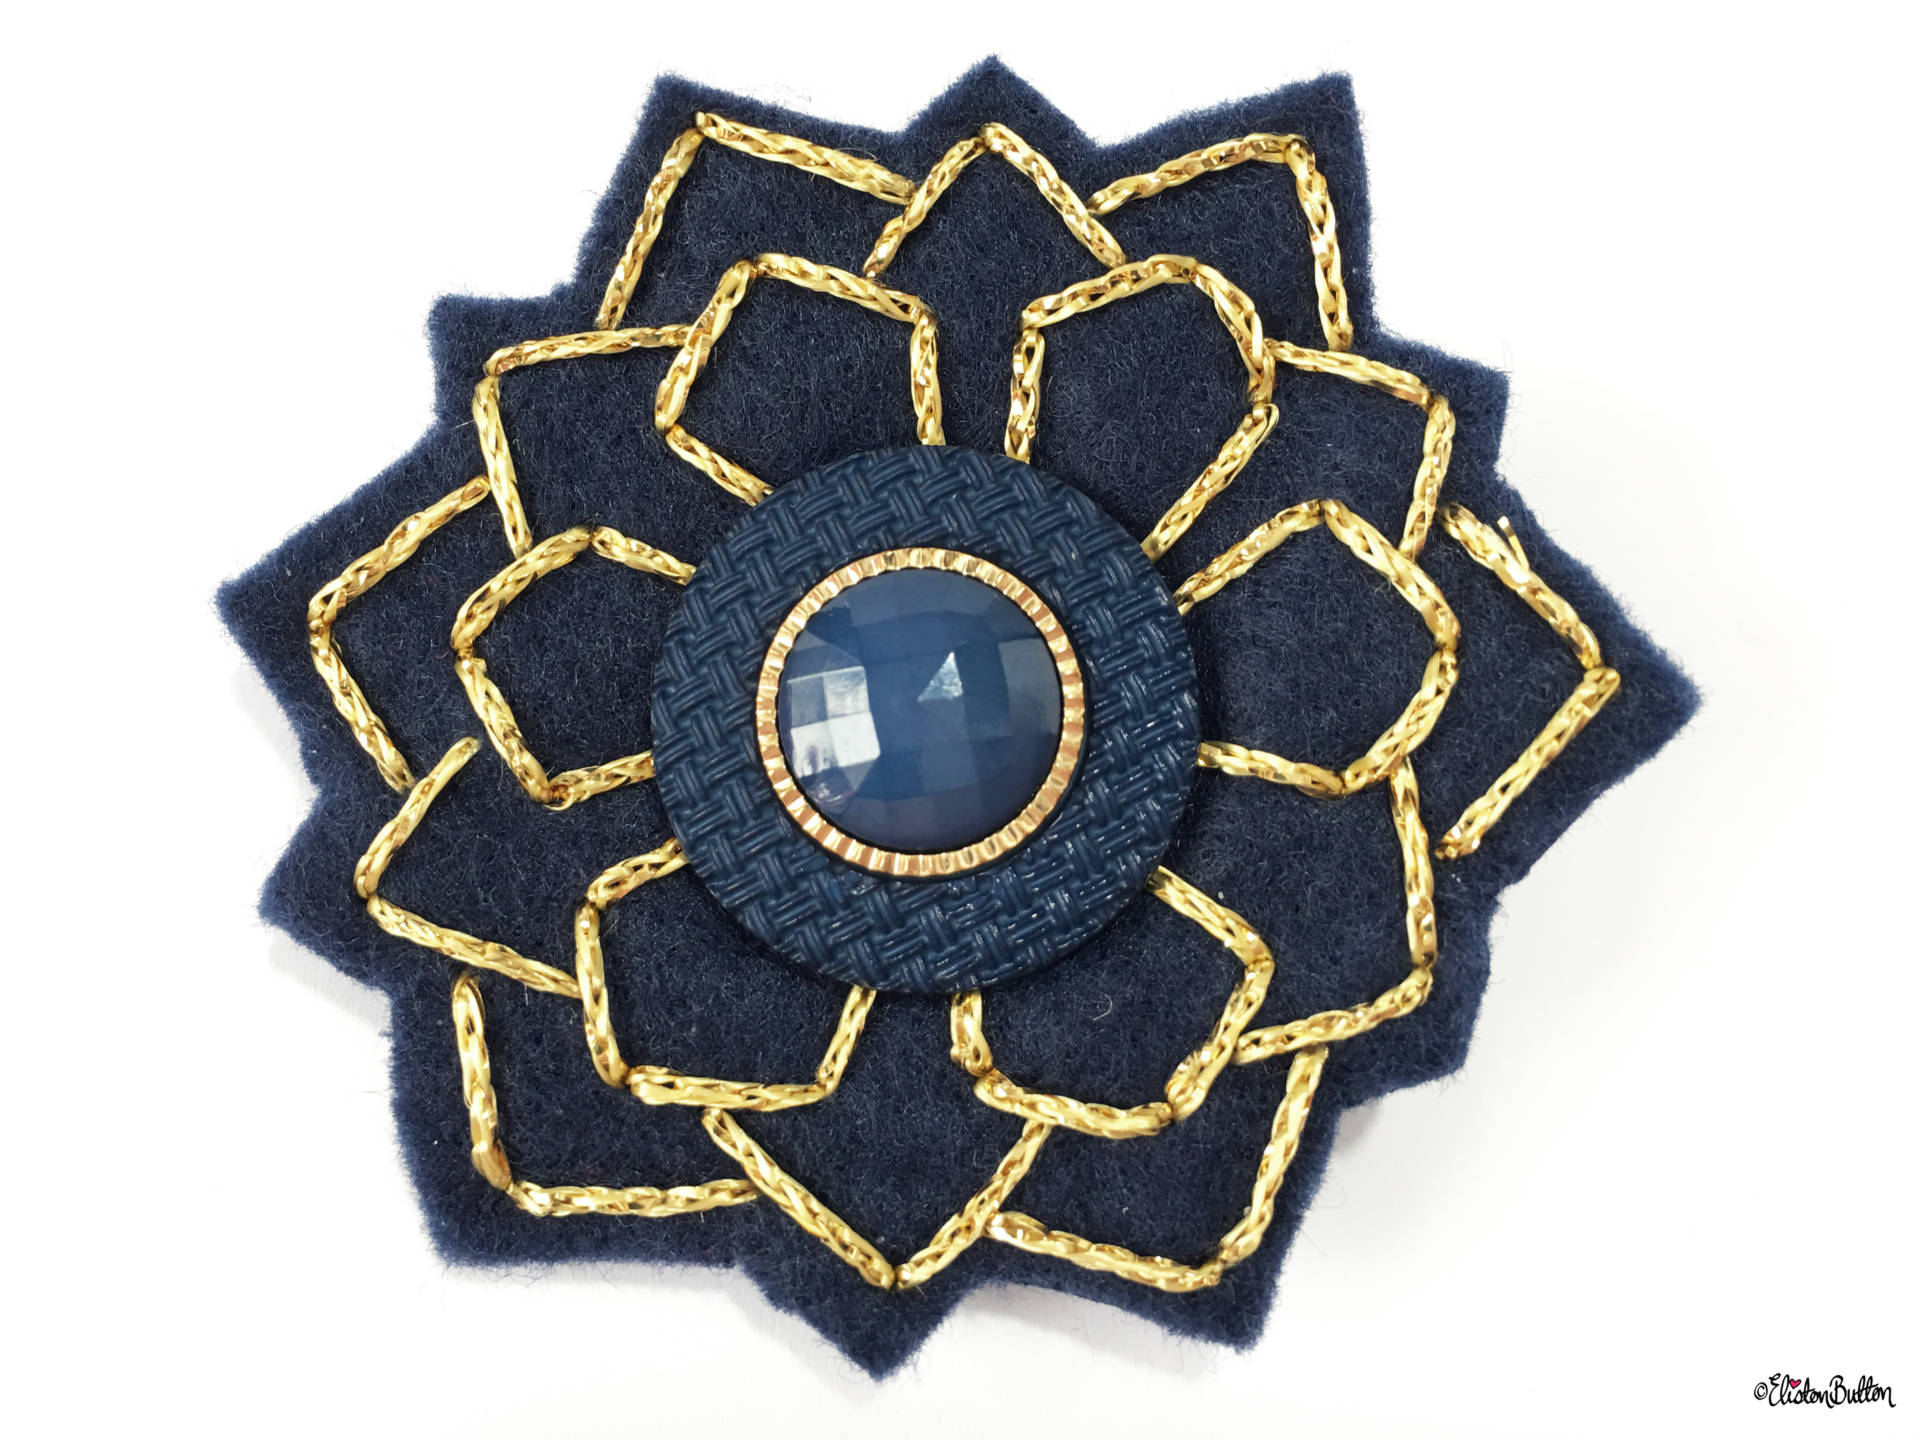 Navy Blue and Gold Embroidered Felt Art Deco Lapel Pin - Create 30 - No. 5, 6, & 7 - Embroidered Felt Lapel Pins at www.elistonbutton.com - Eliston Button - That Crafty Kid – Art, Design, Craft & Adventure.